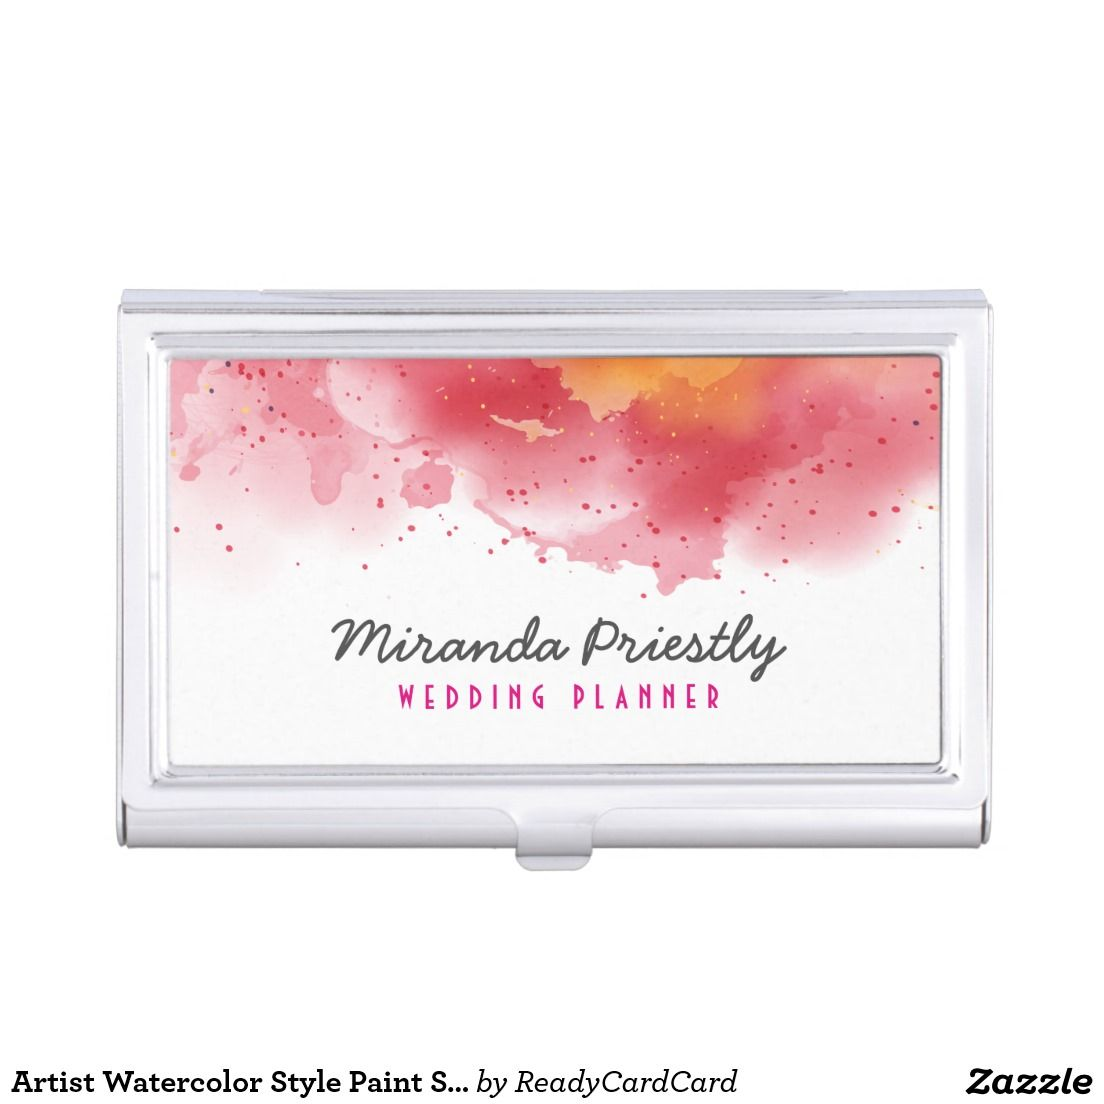 Artist watercolor style paint splatter chic business card holder artist watercolor style paint splatter chic business card holder colourmoves